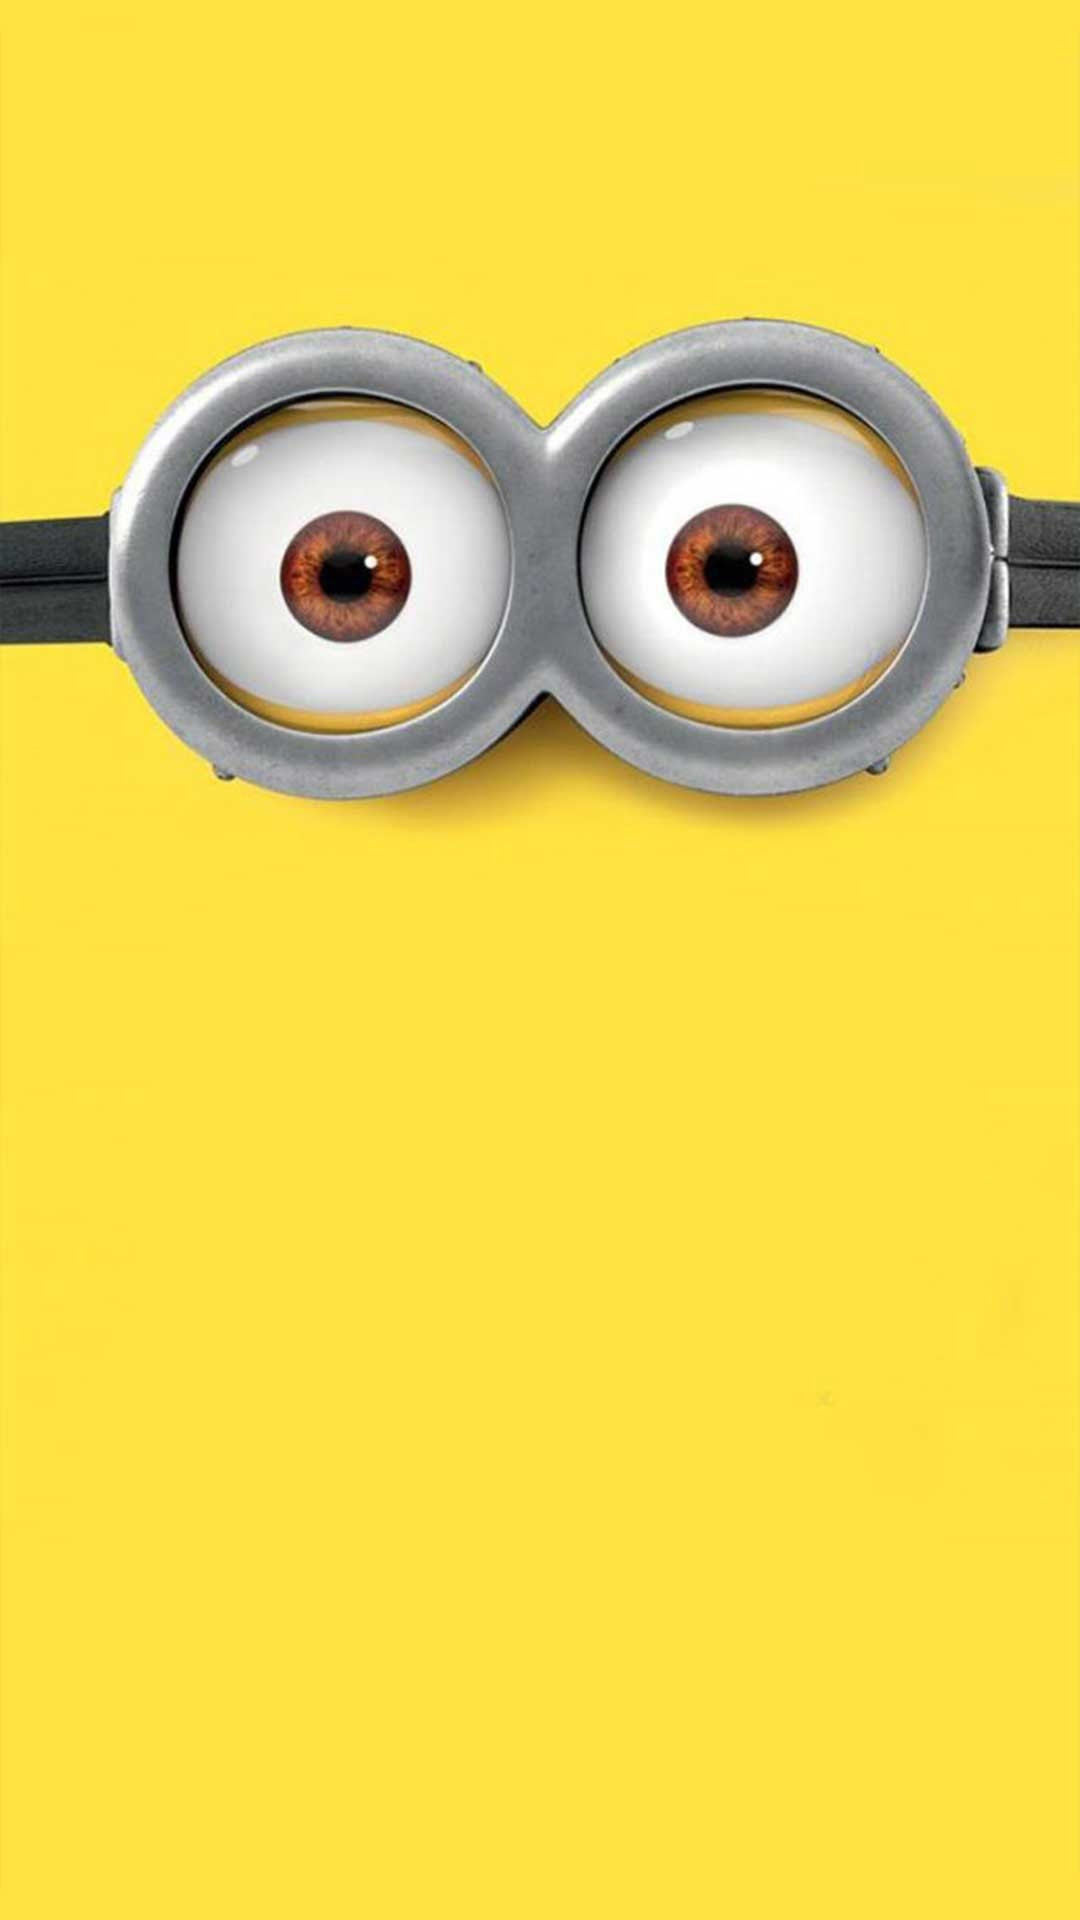 Minion iPhone Wallpaper HD (83+ images)